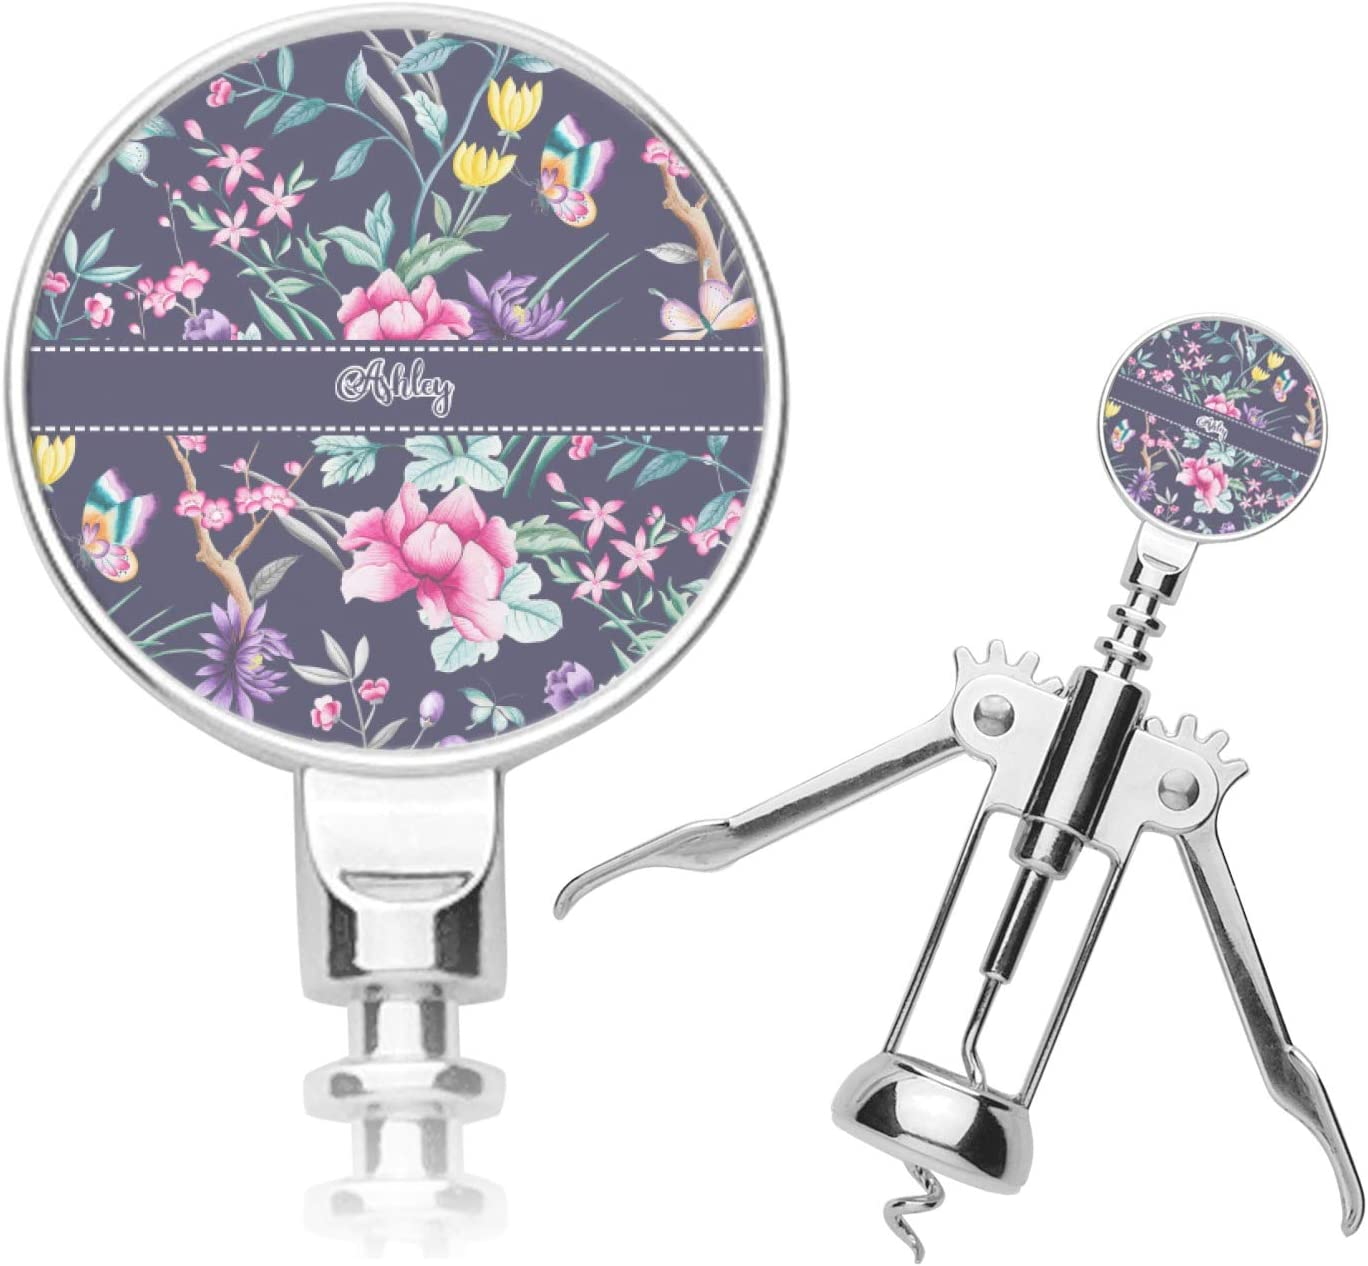 Chinoiserie famous Corkscrew Gifts Personalized